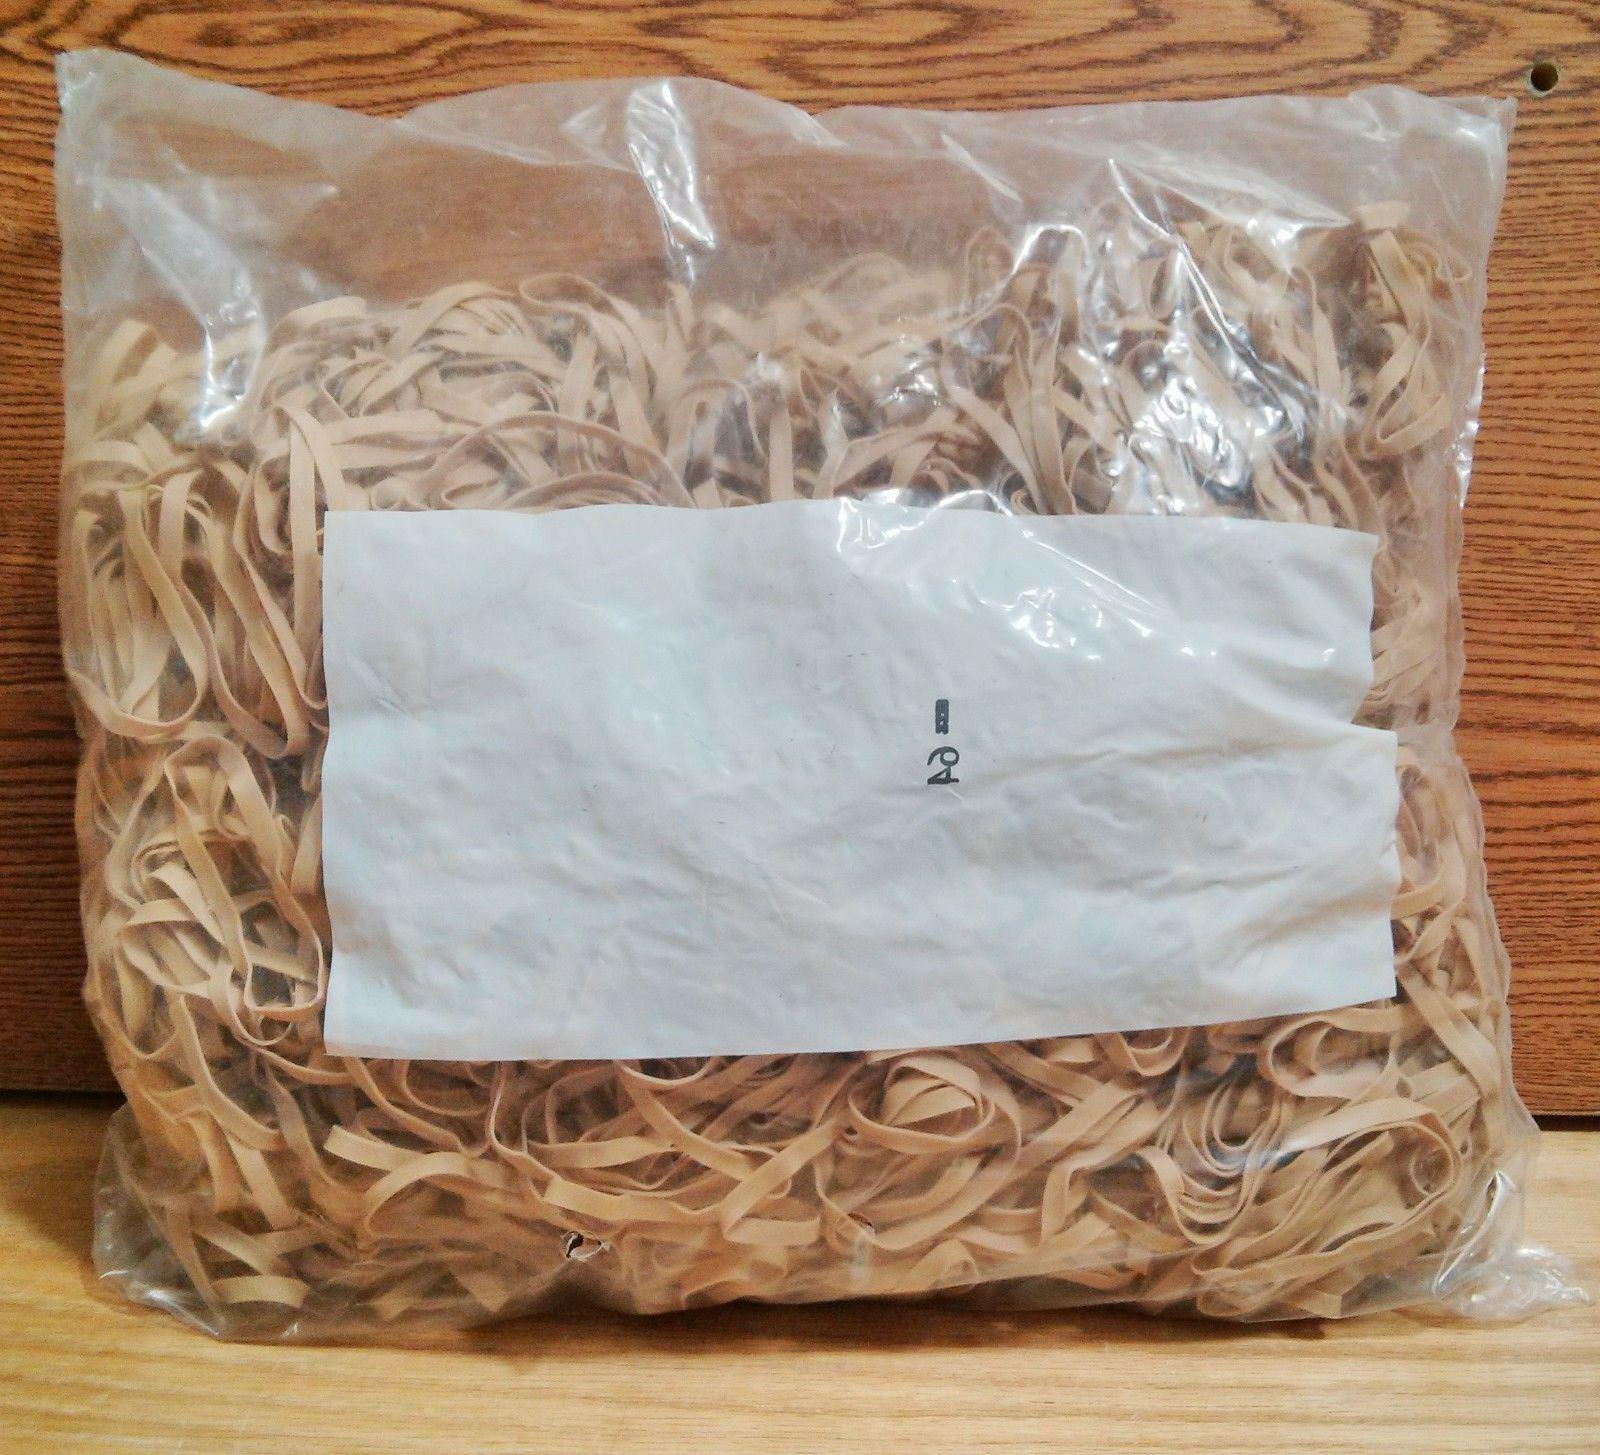 "5 lb Bag - Alliance Postal Rubber Band - Size #64, 3 1/2"" x"